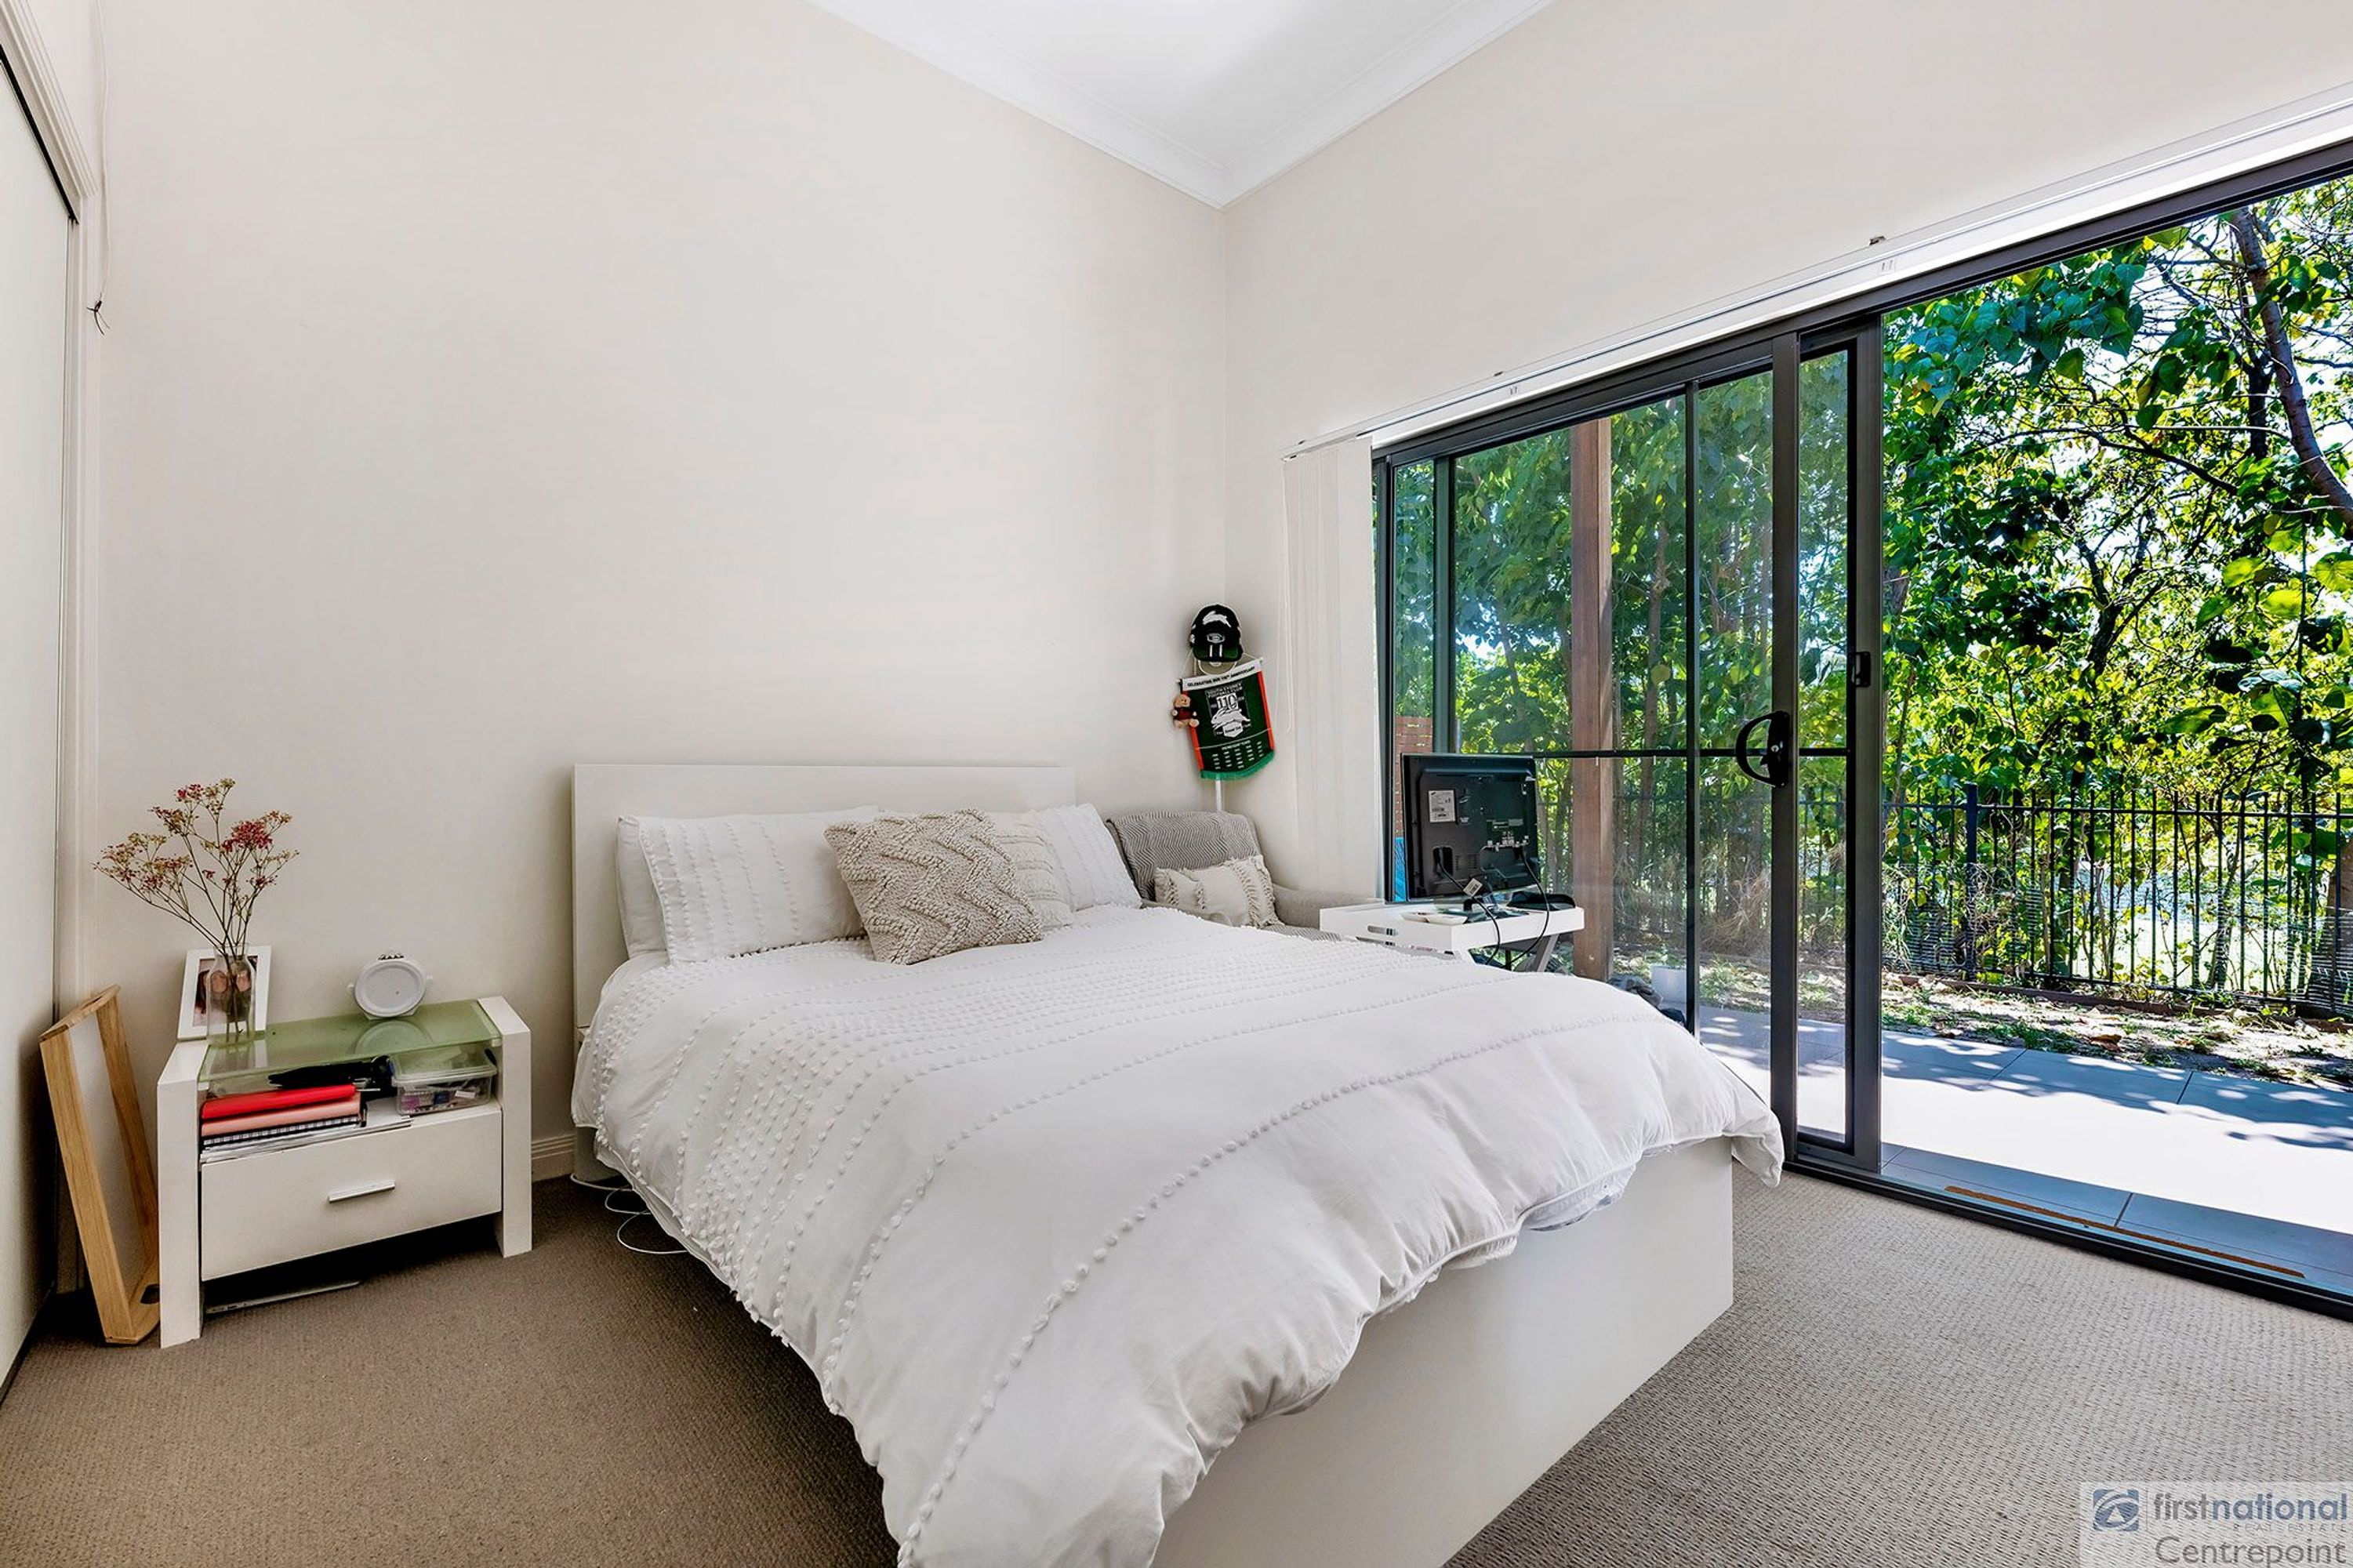 17/17 Great Southern Drive, Robina, QLD 4226